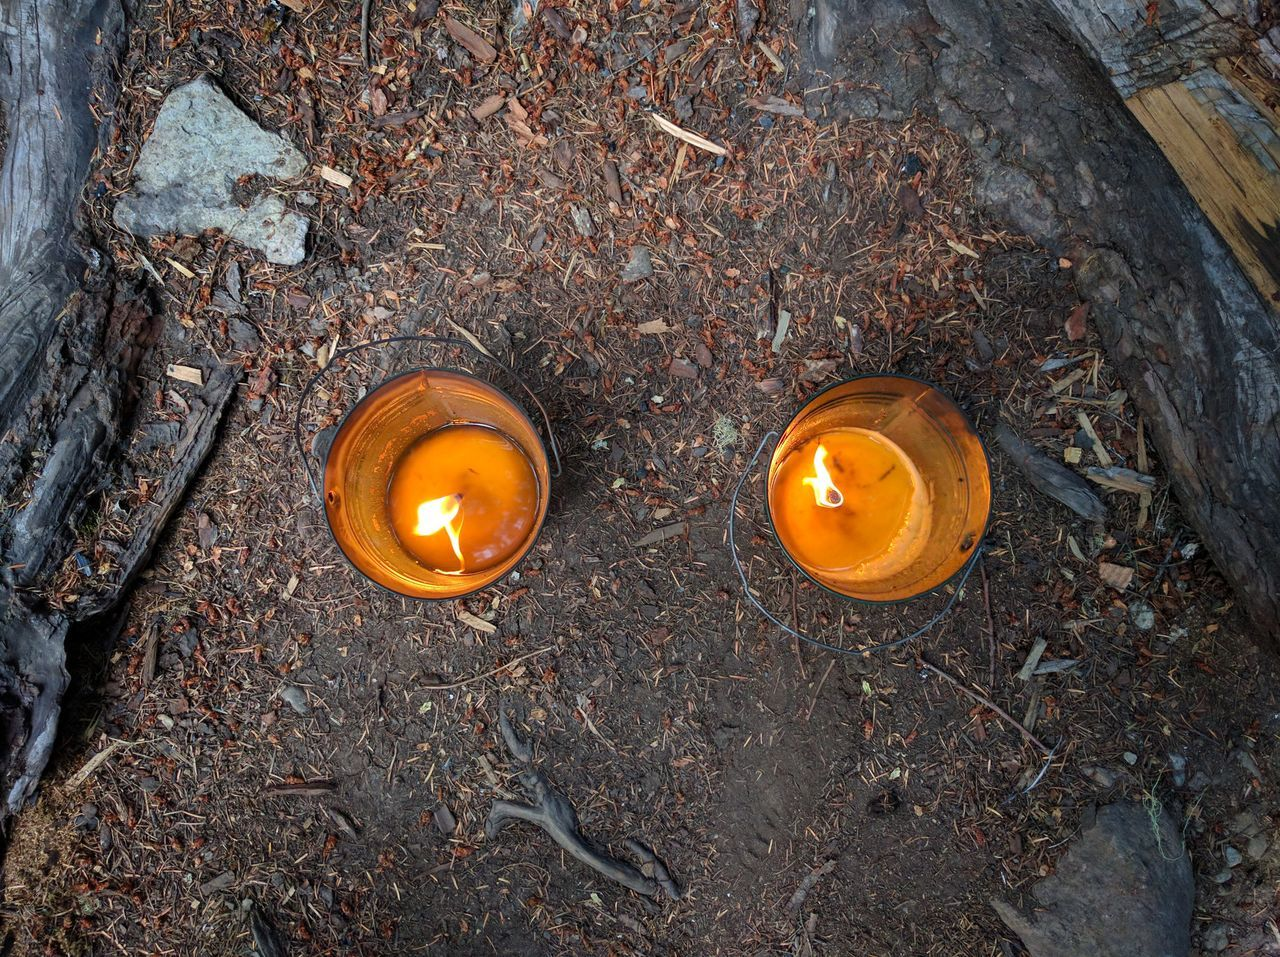 Camping in Eastern Washington Burning Camping Campsite Candle Close-up Day High Angle View Indoors  Metal No People Orange Color